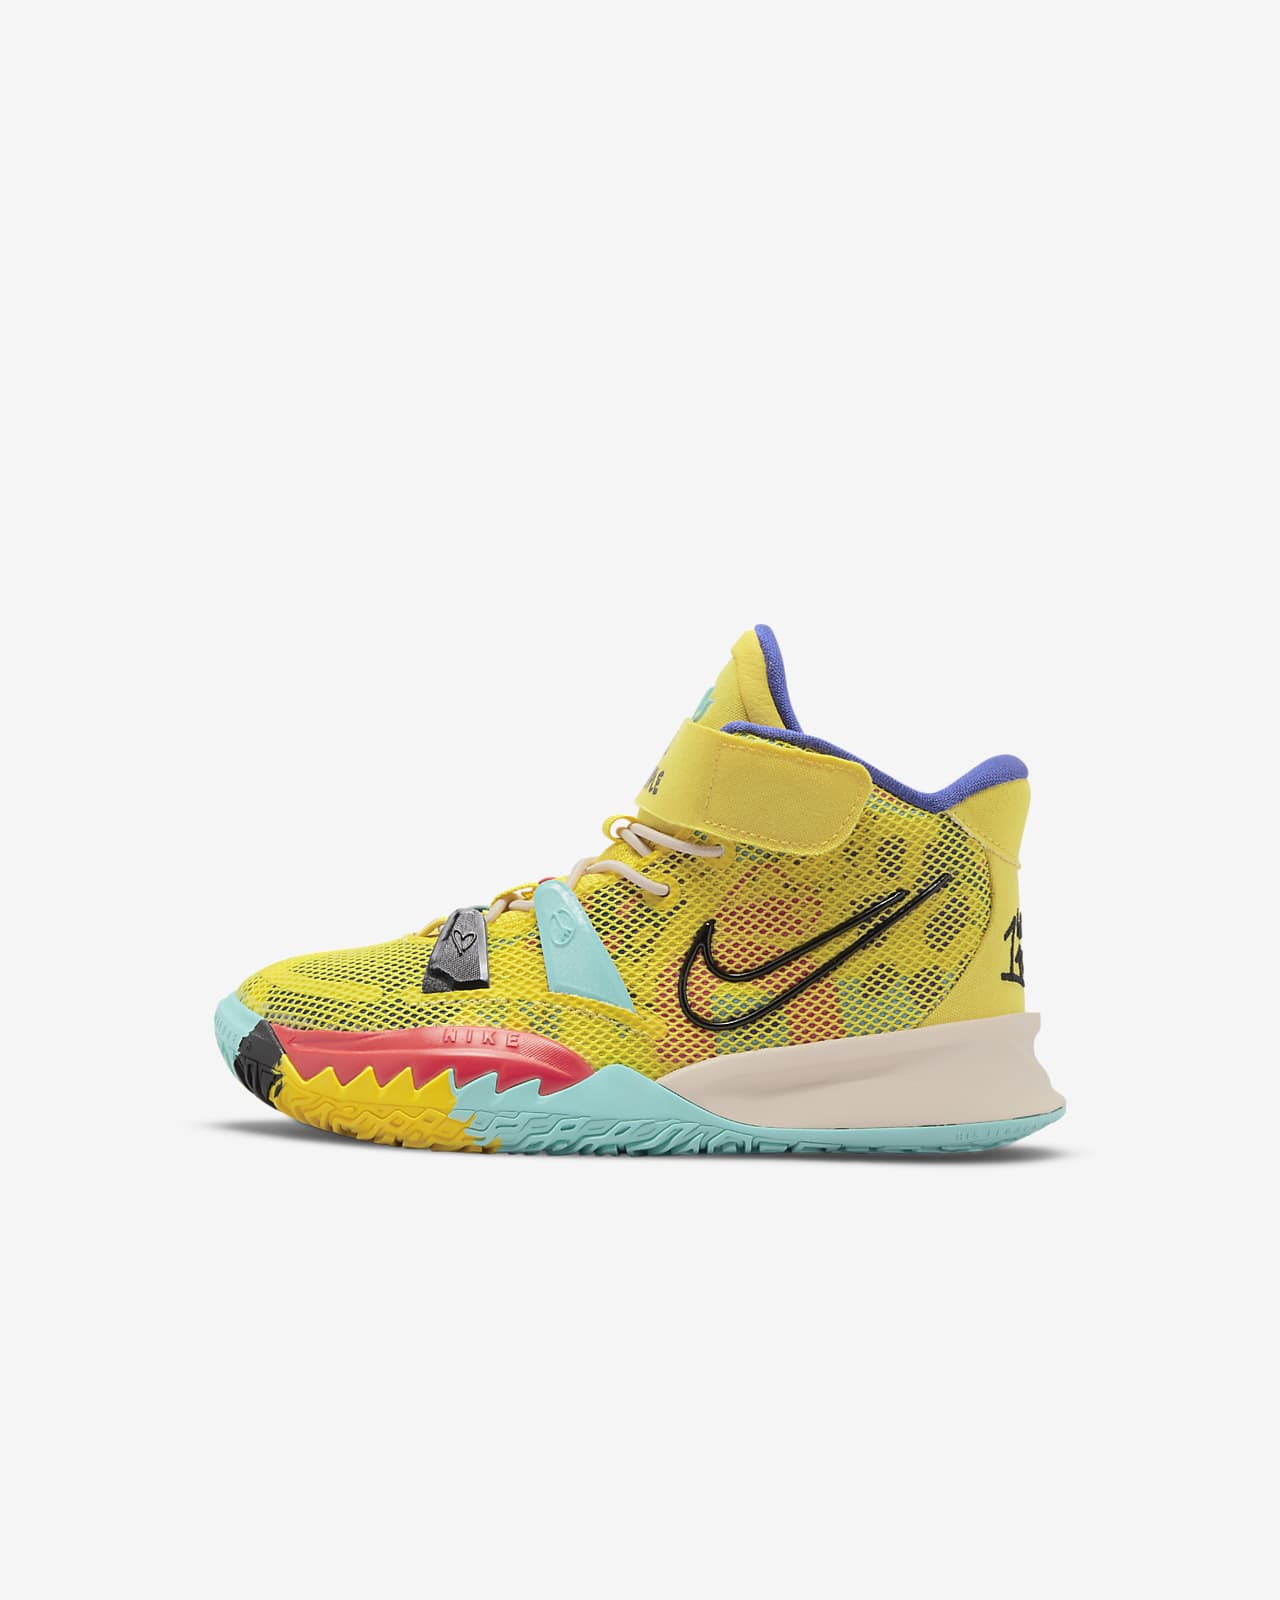 Kyrie 7 Younger Kids' Shoe